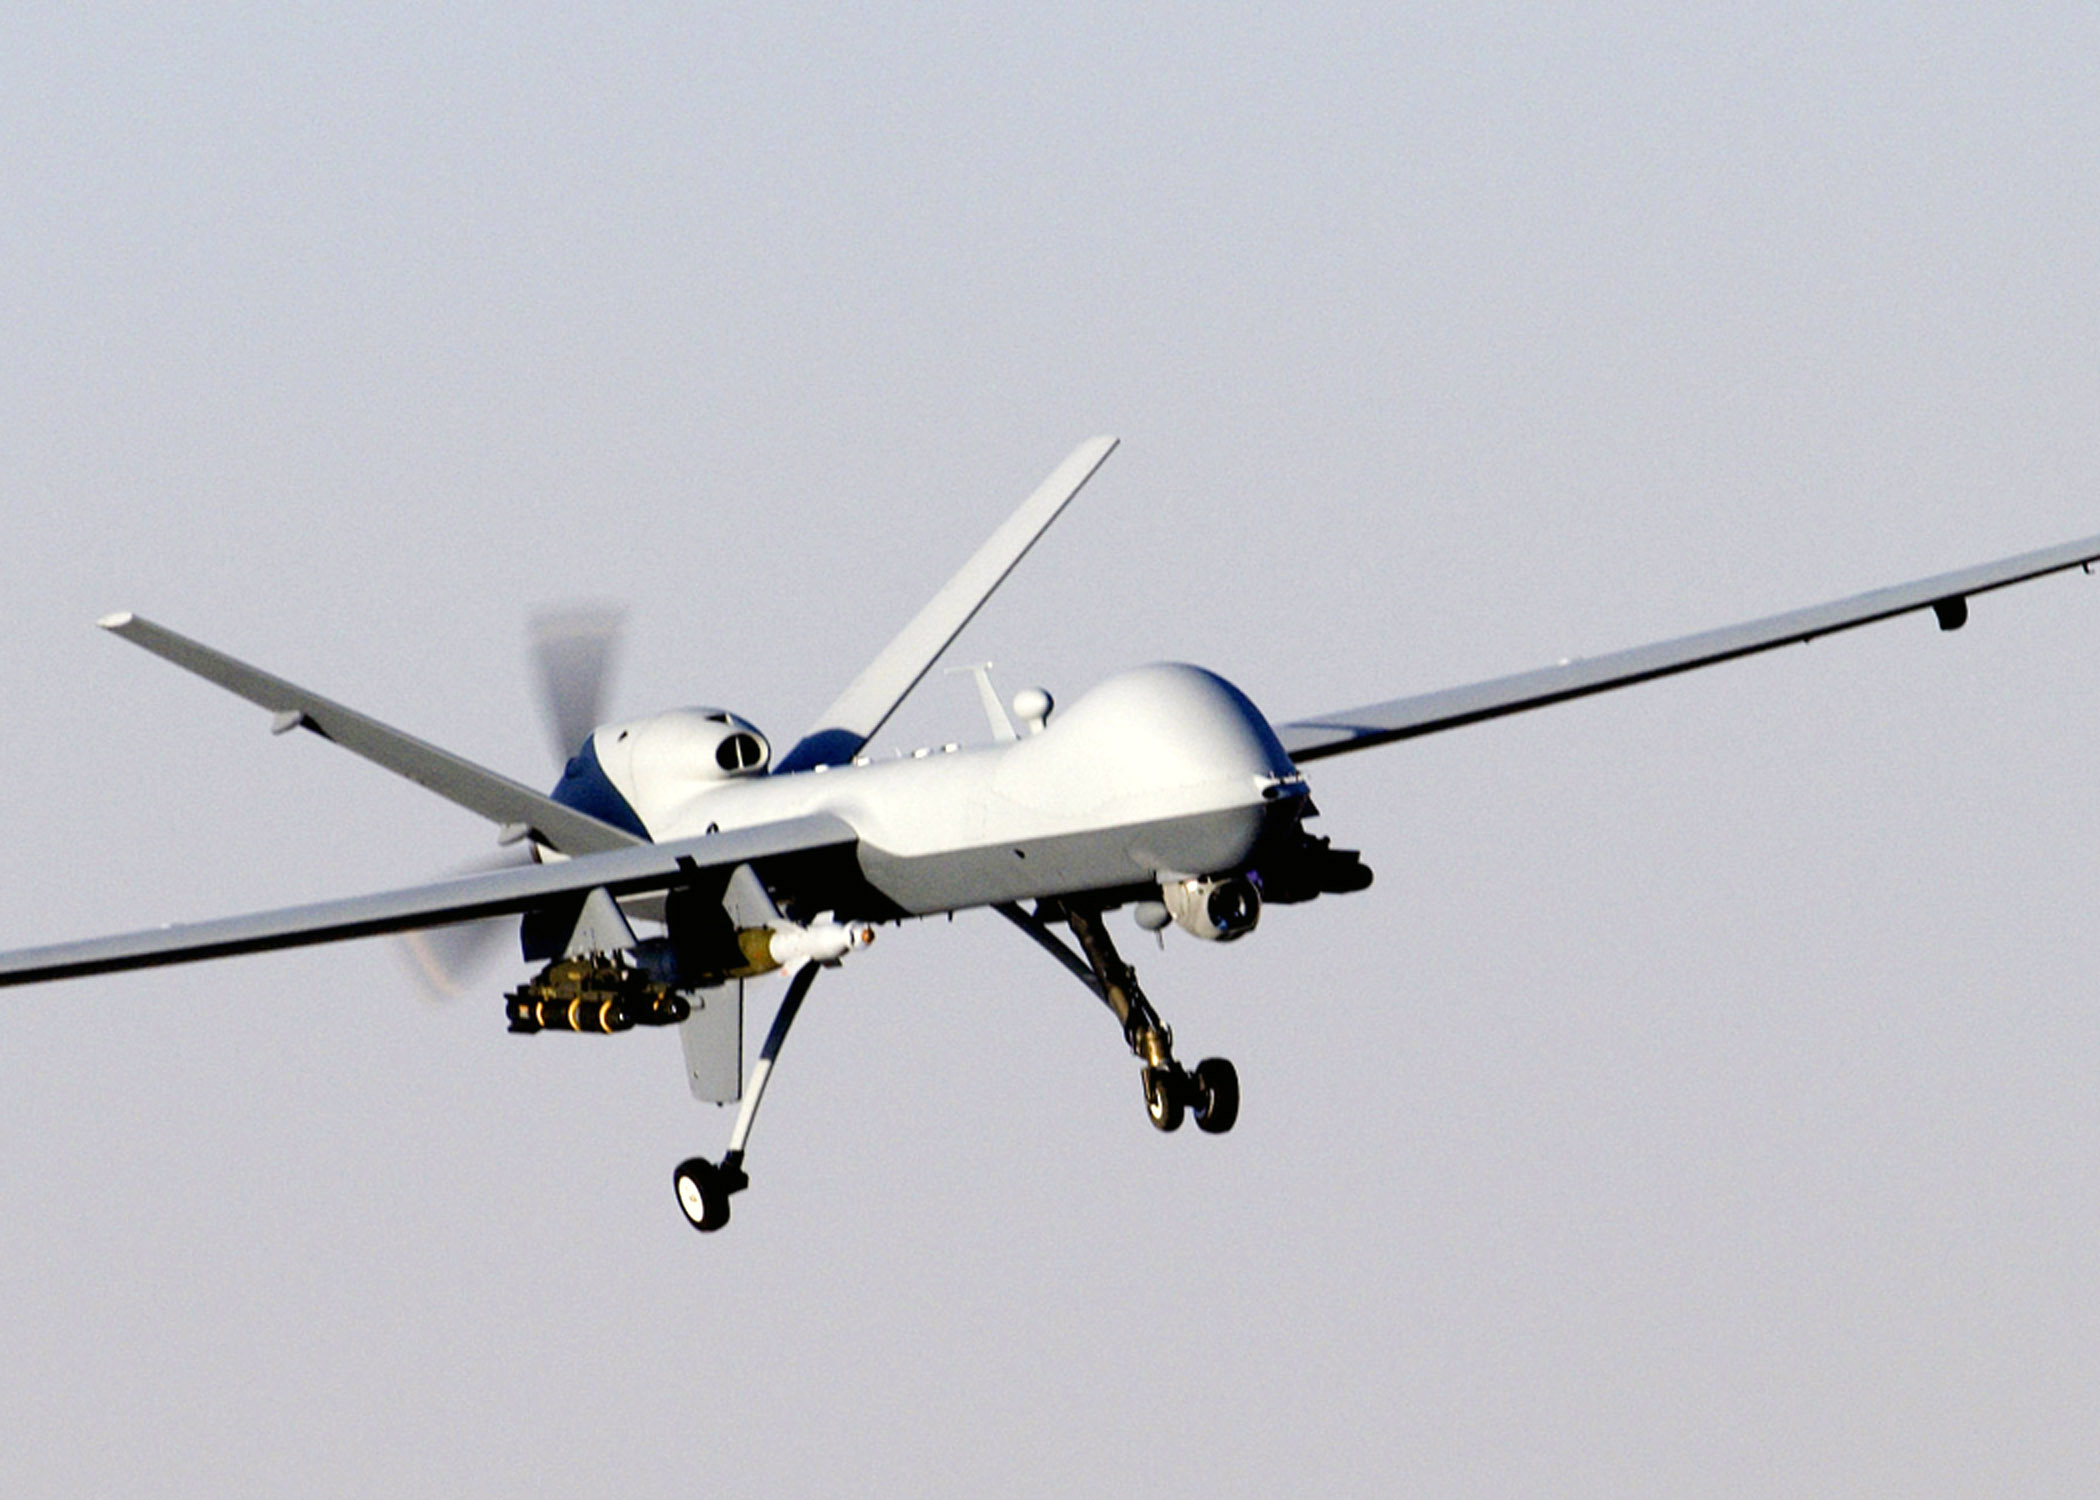 http://upload.wikimedia.org/wikipedia/commons/b/b0/MQ-9_Reaper_in_flight_(2007).jpg